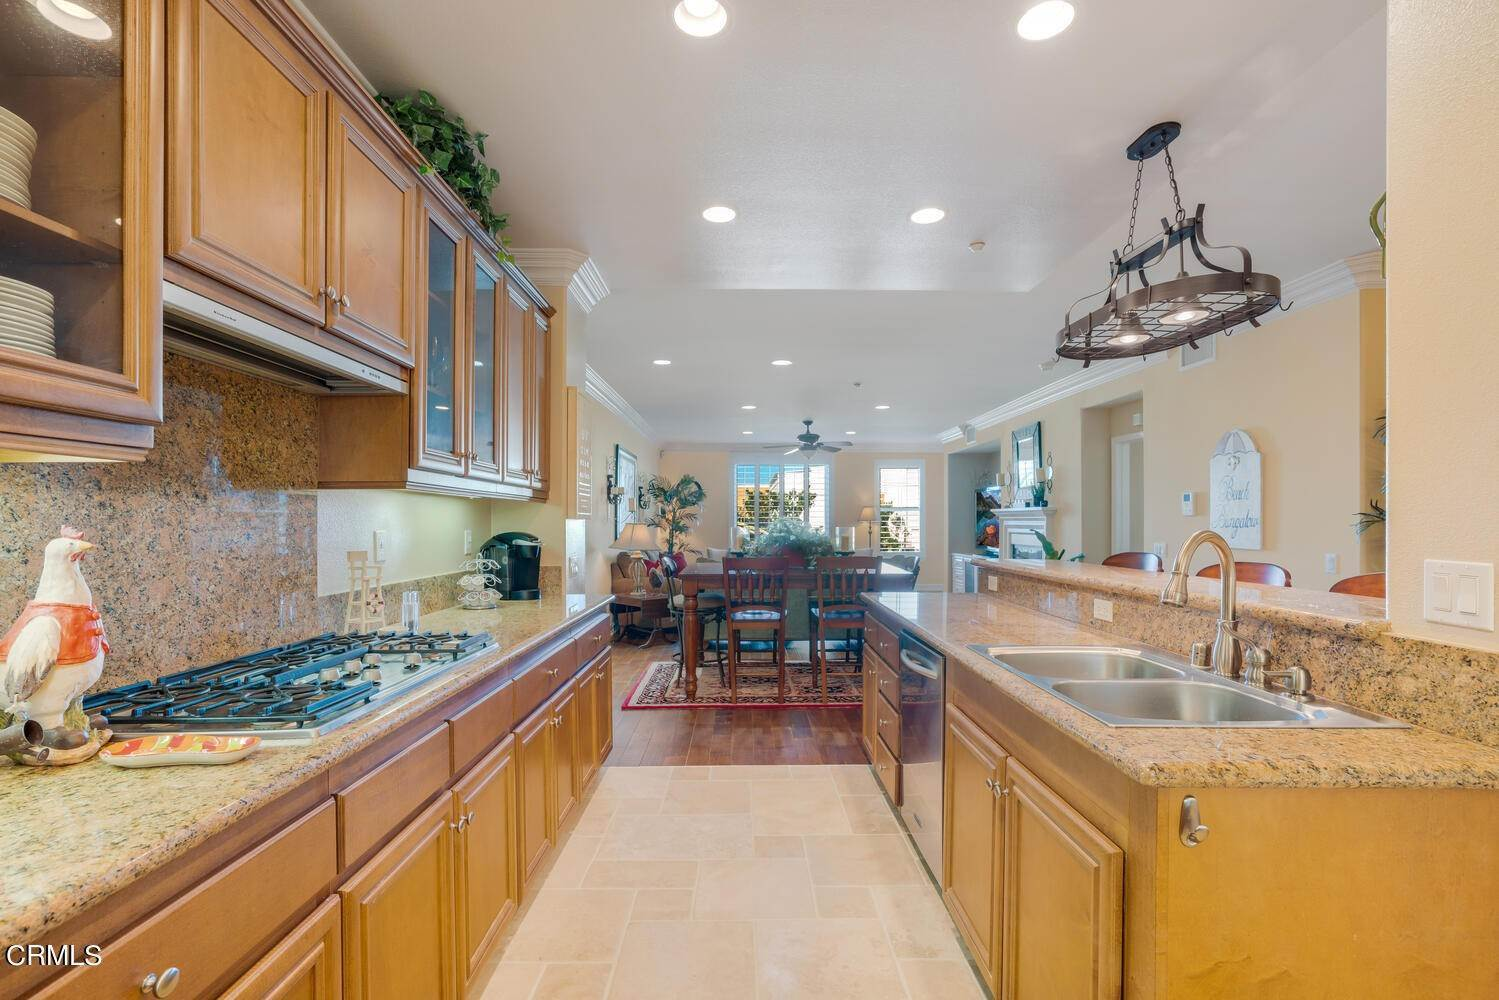 5. Condominiums for Sale at 1405 Windshore Way Oxnard, California 93035 United States